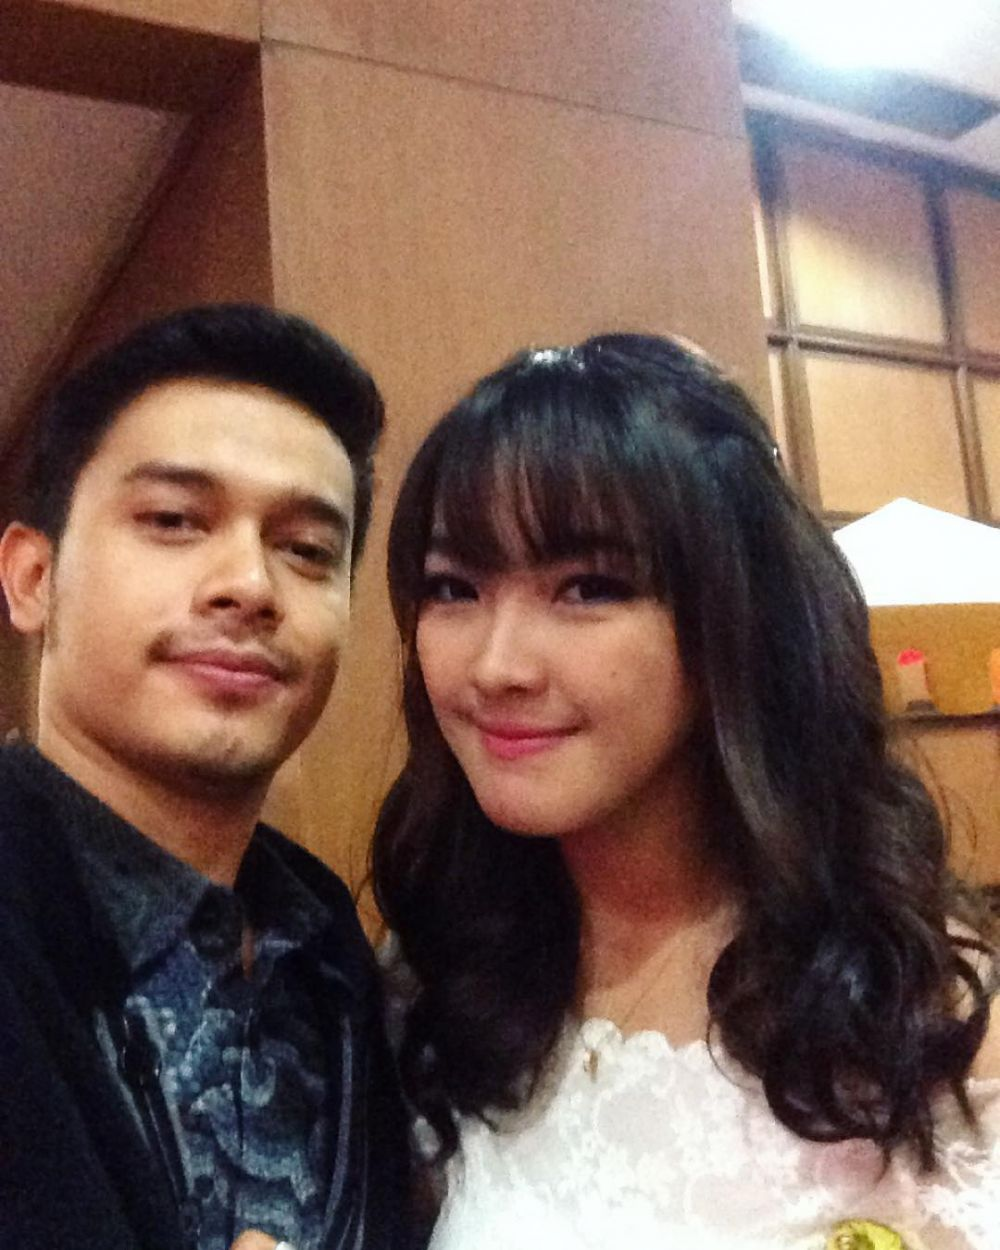 Ana Riana dan pacar nyata Willy instagram